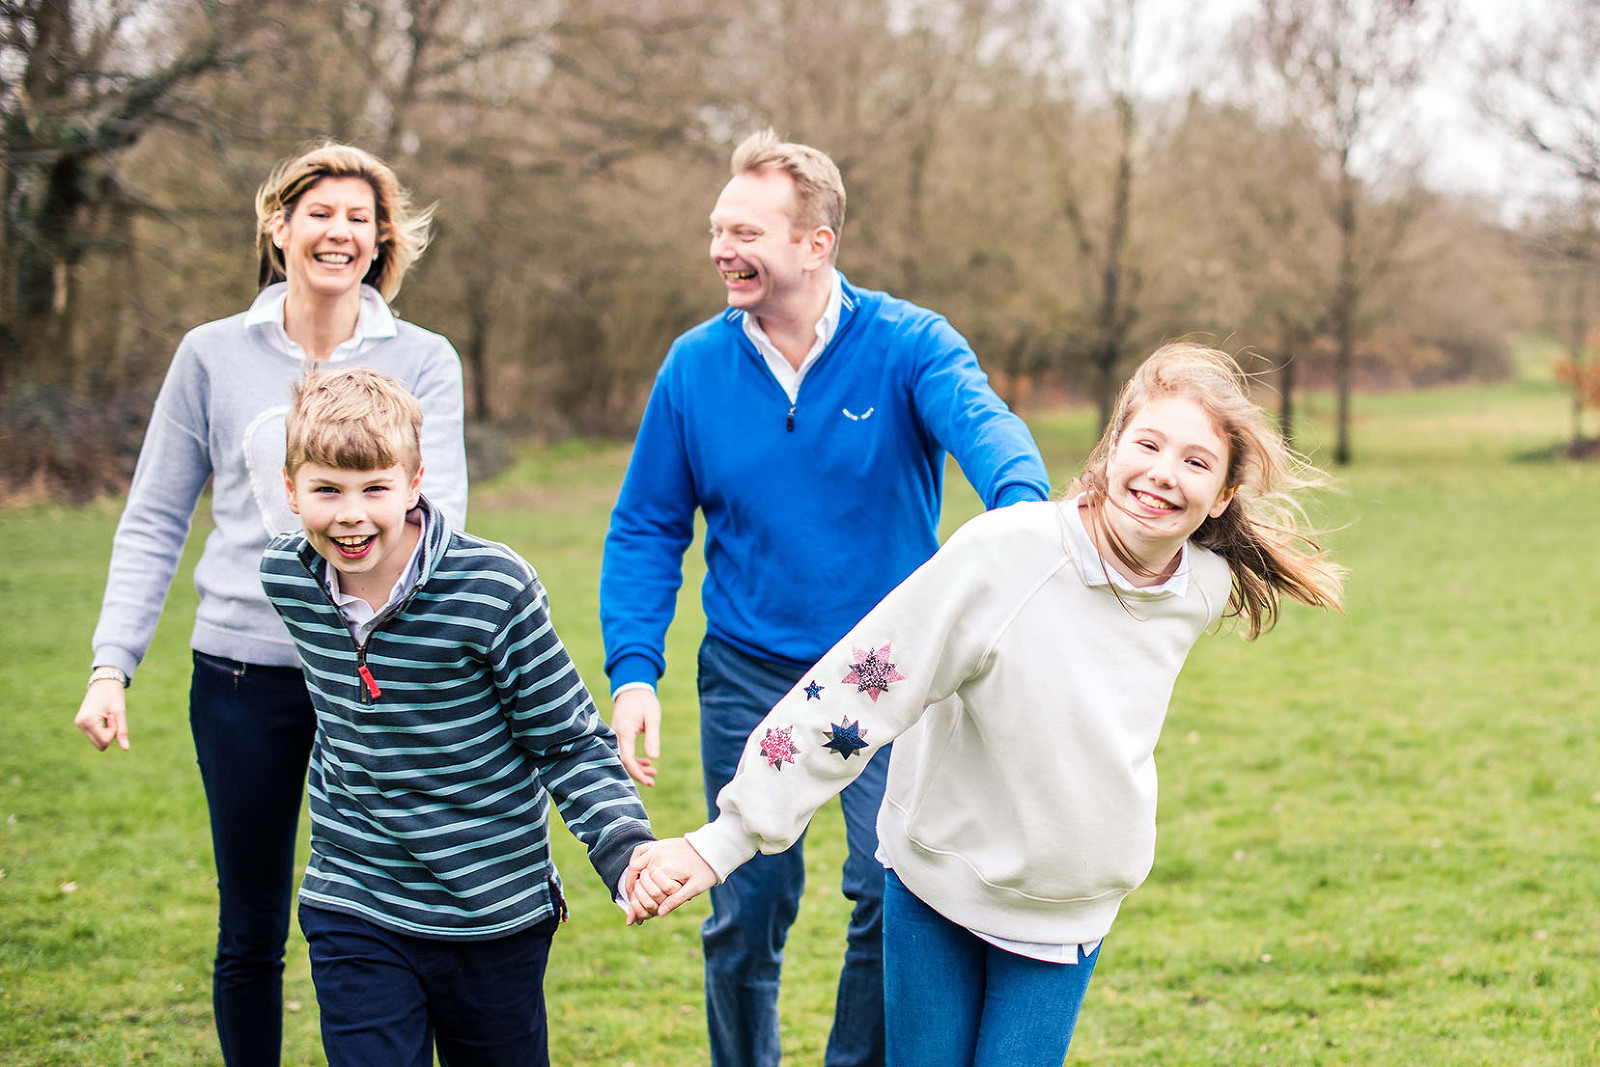 Family running together on photo shoot